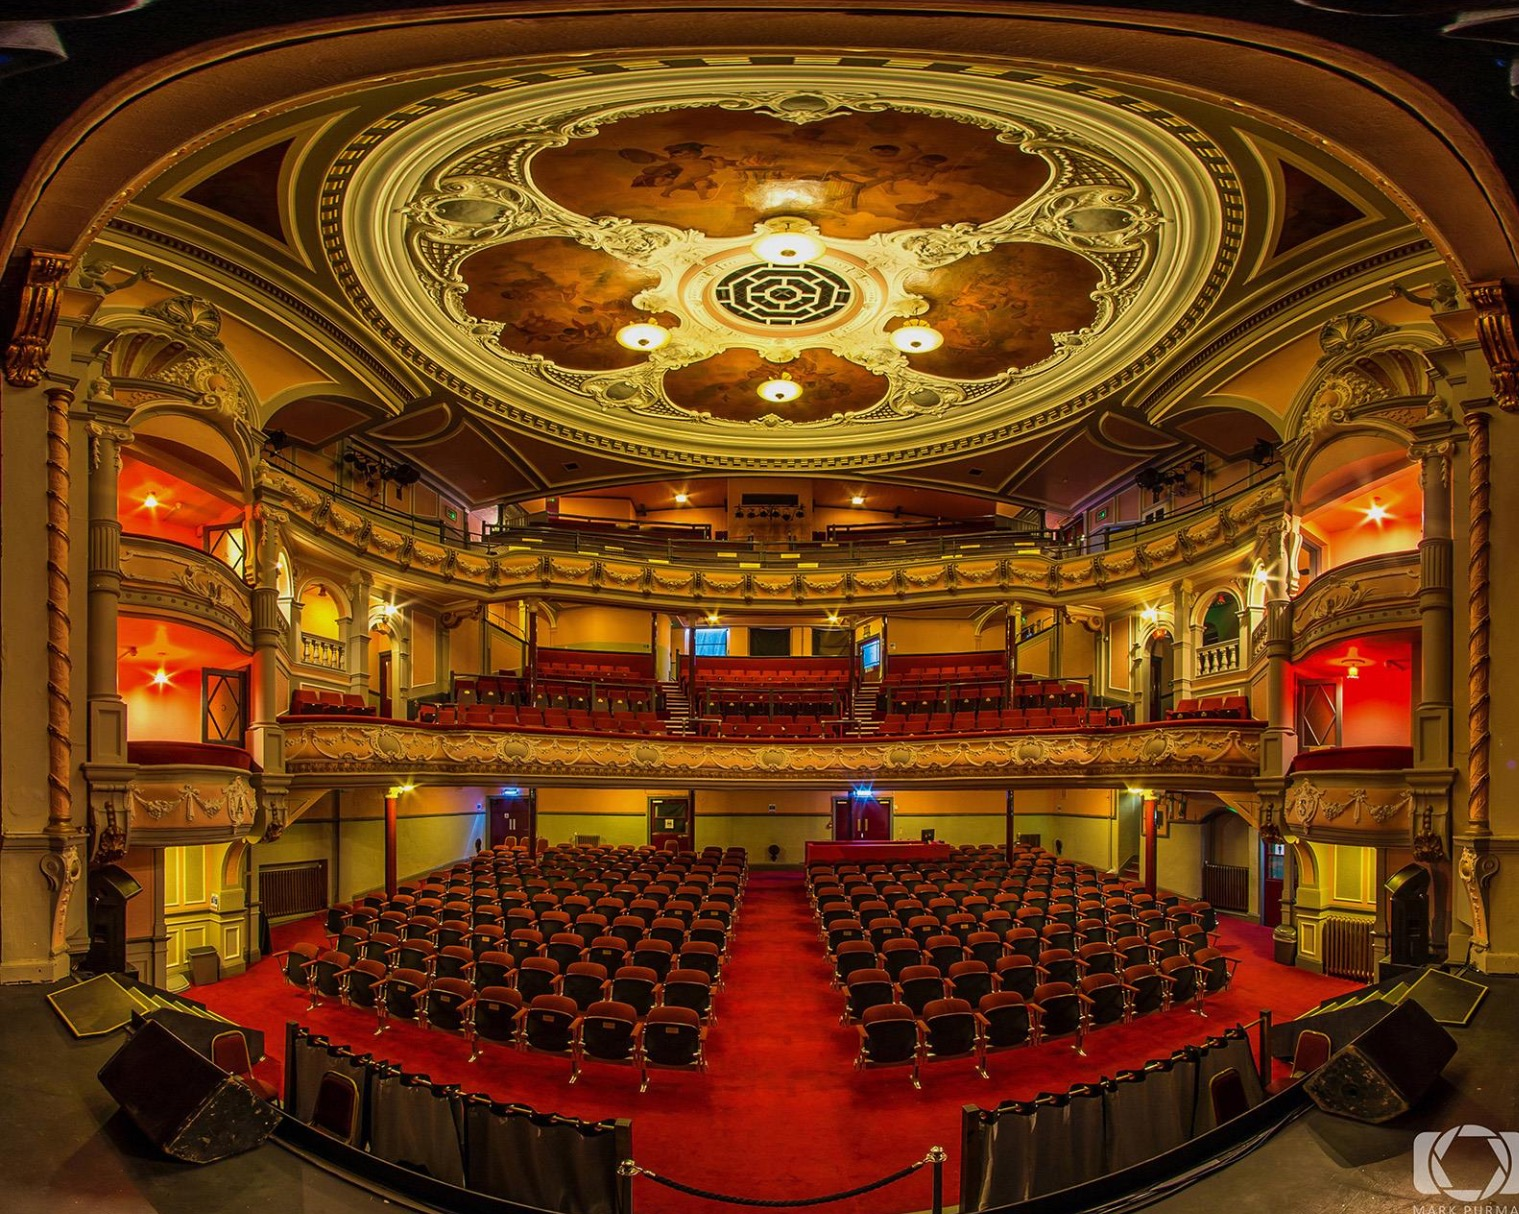 The Tivoli Theatre is one of Scotland's most famous venues.